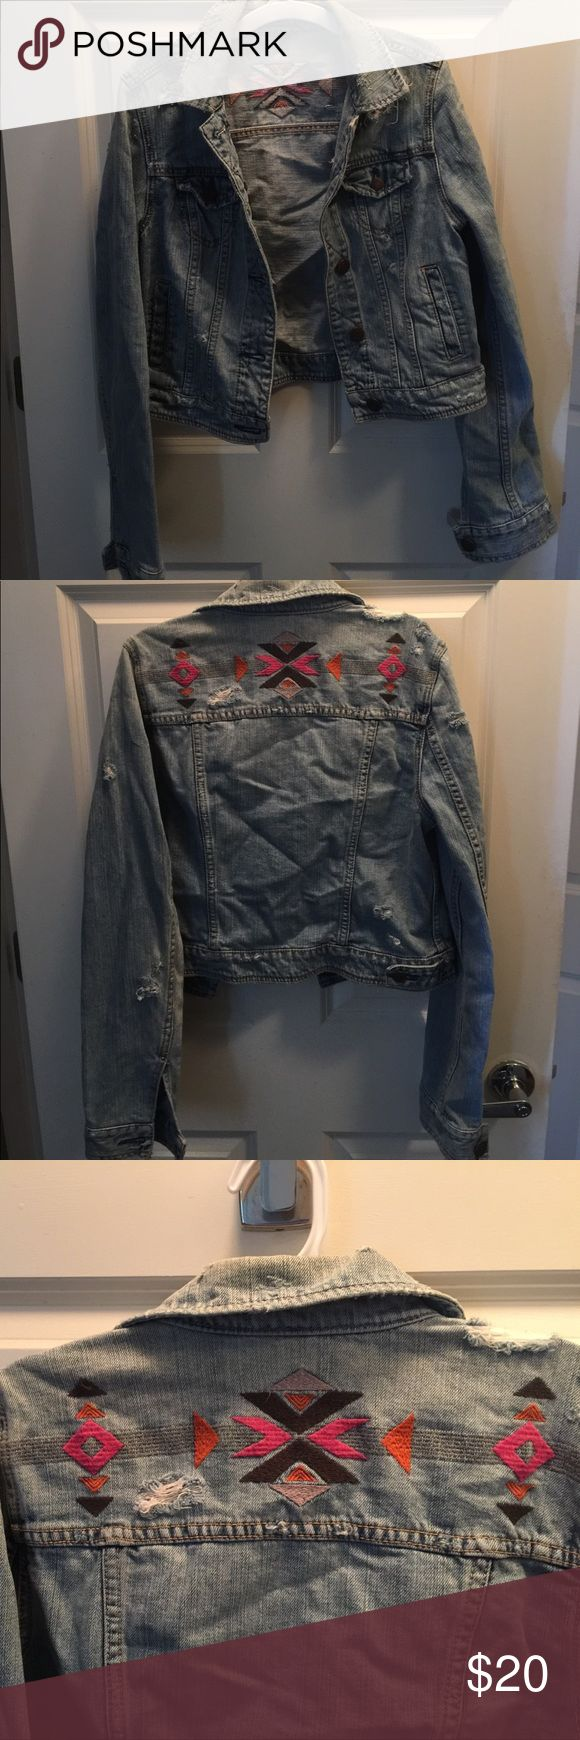 Super Fun Aztec Jean Jacket Great condition. Slight discoloring around the collar. American Eagle Outfitters Jackets & Coats Jean Jackets